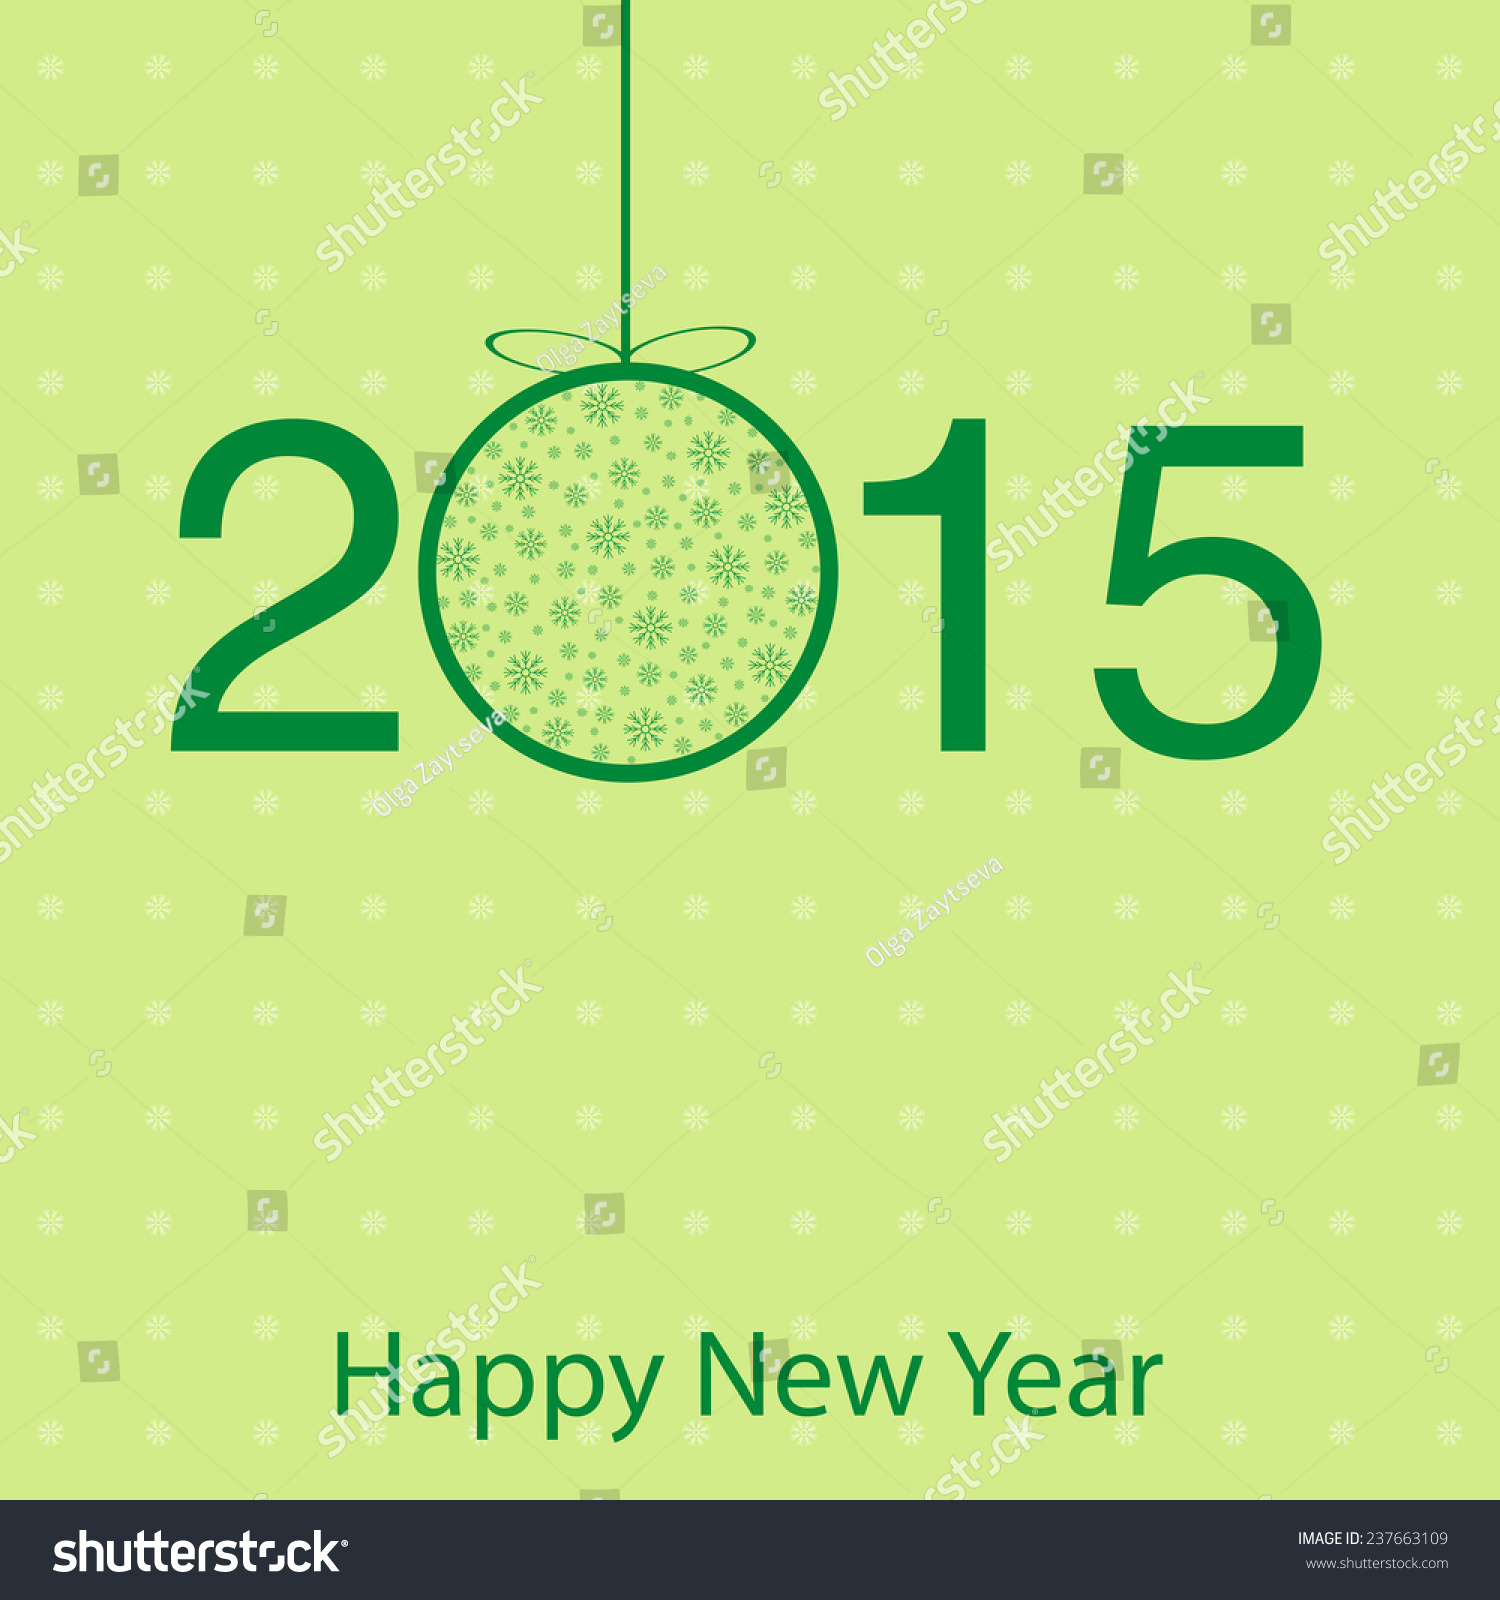 Template greeting cards 2015 new year stock vector 237663109 template greeting cards for 2015 new year greetings kristyandbryce Choice Image